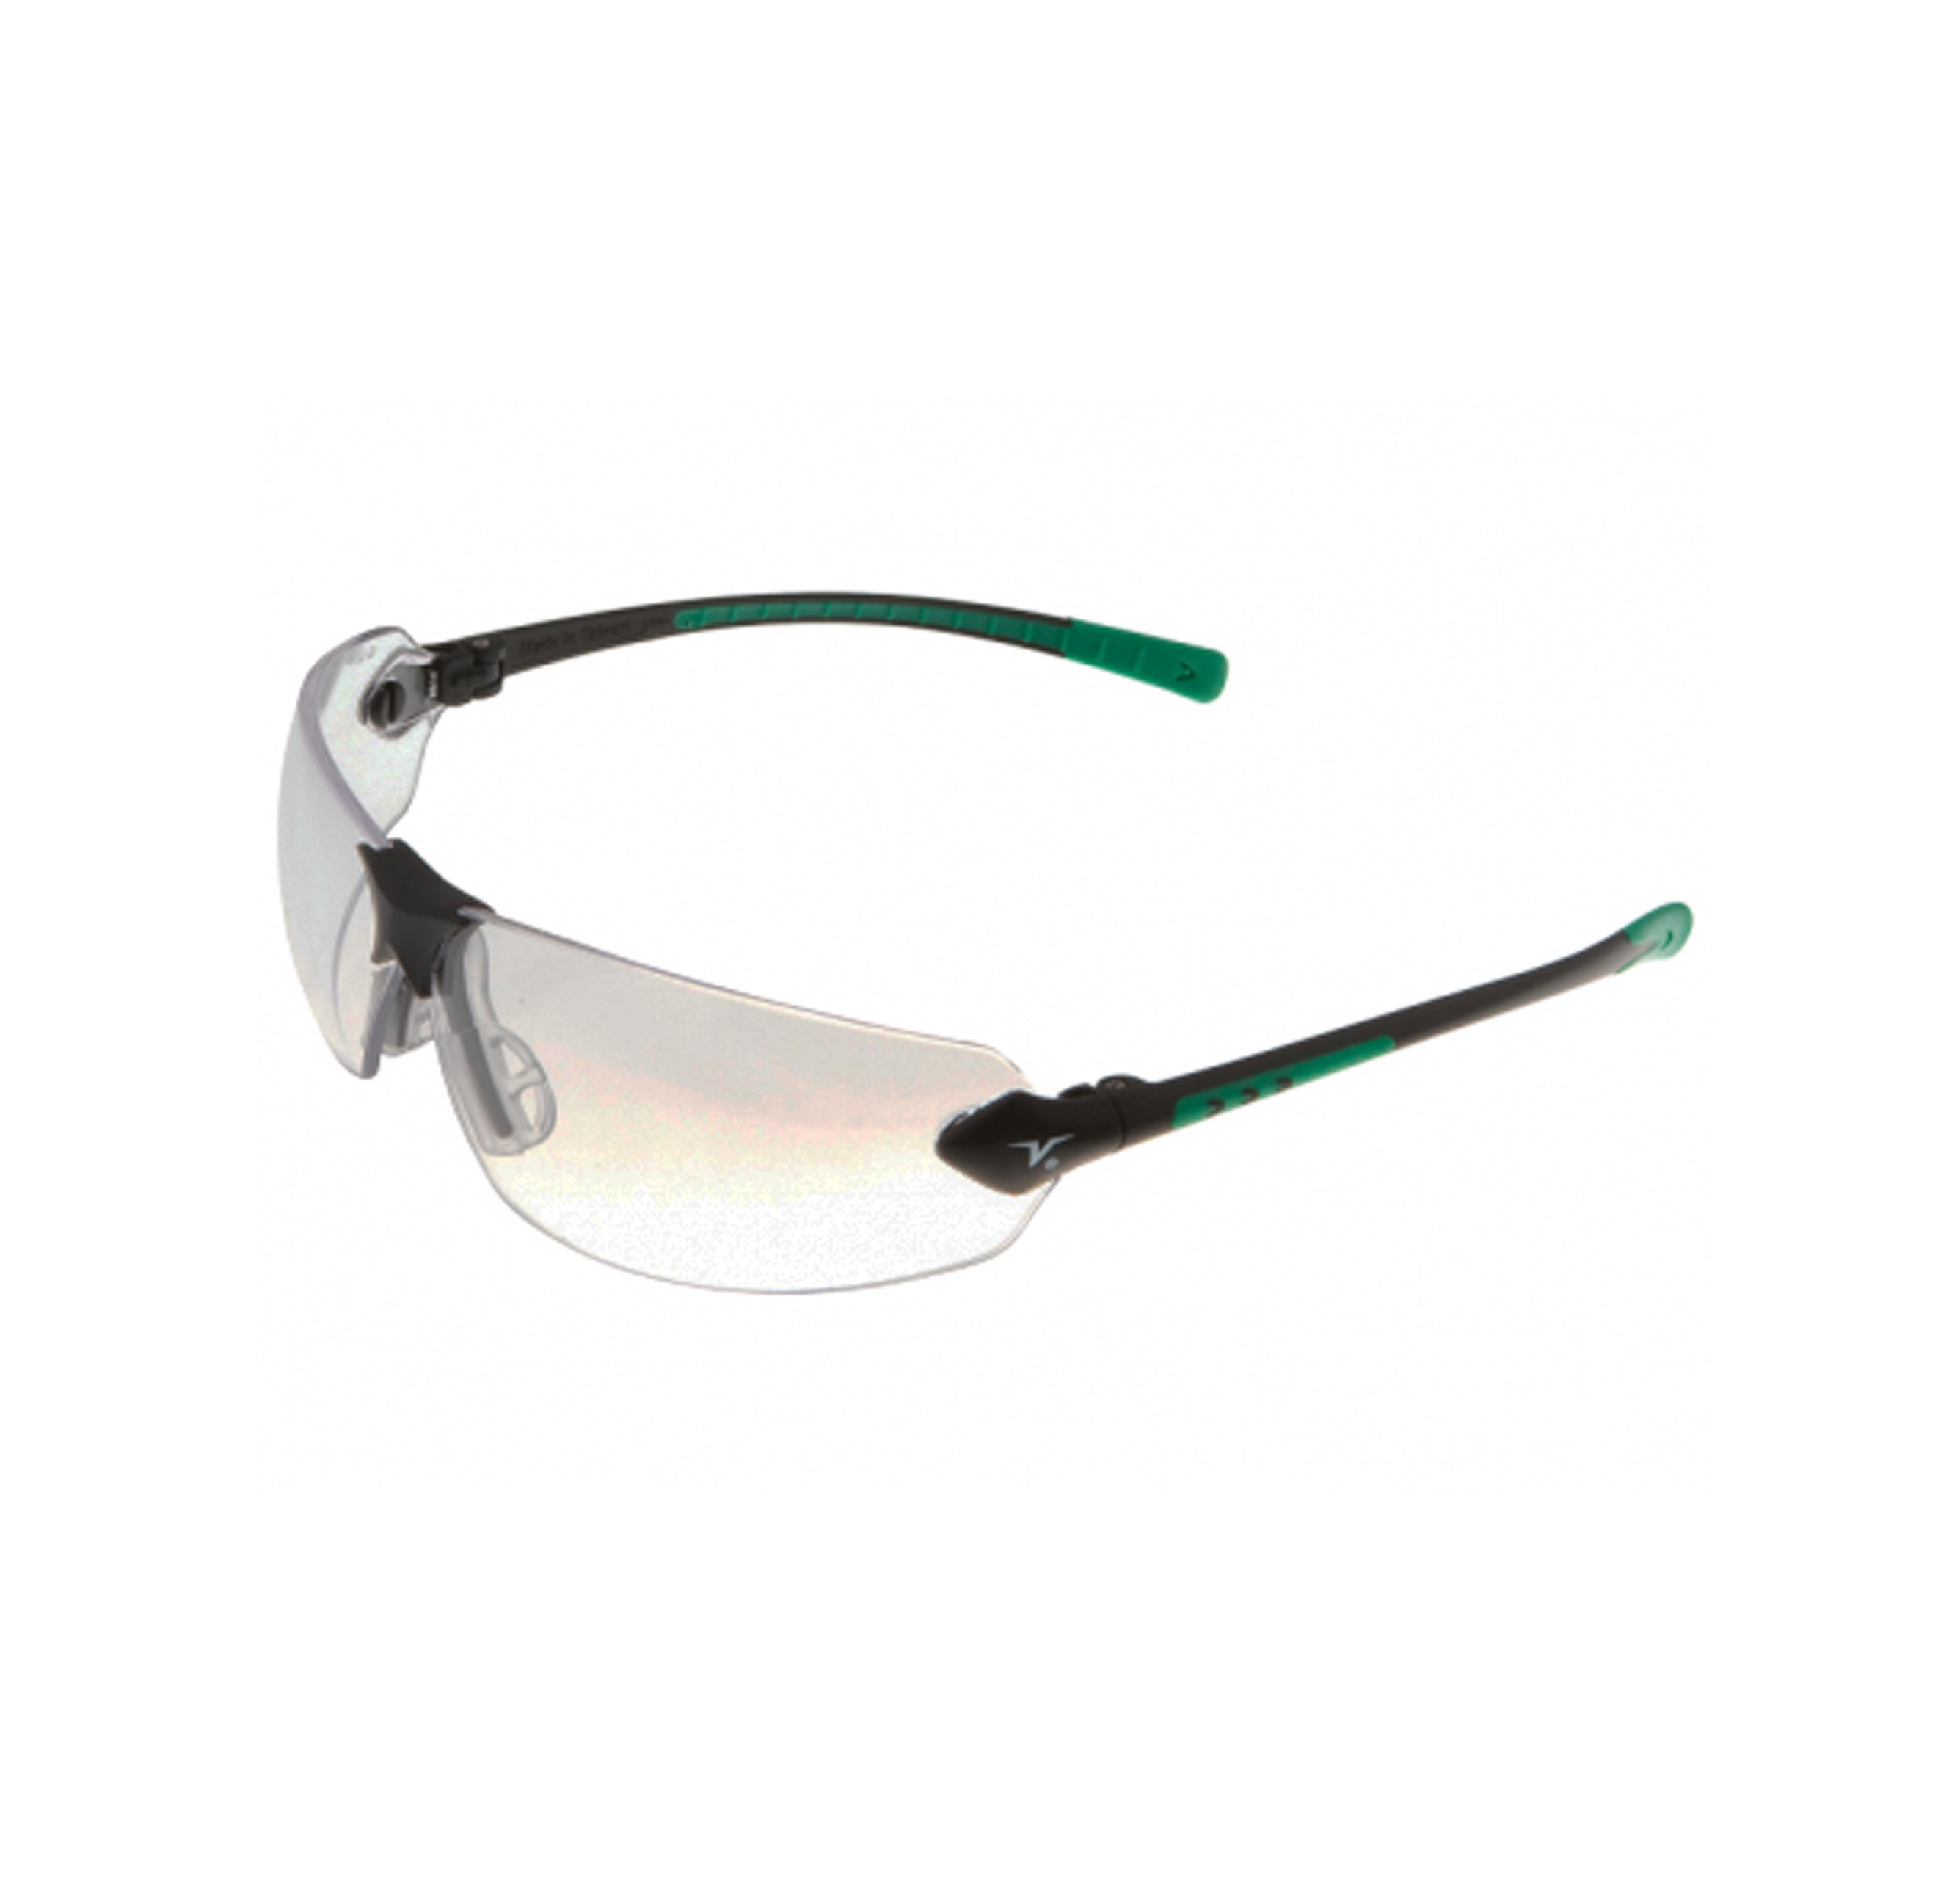 614c1b1acc Veratti 429 CLEAR ANTI-UVA   UVB   ENFOG Safety Glasses ANSI Z87.1 Compliant